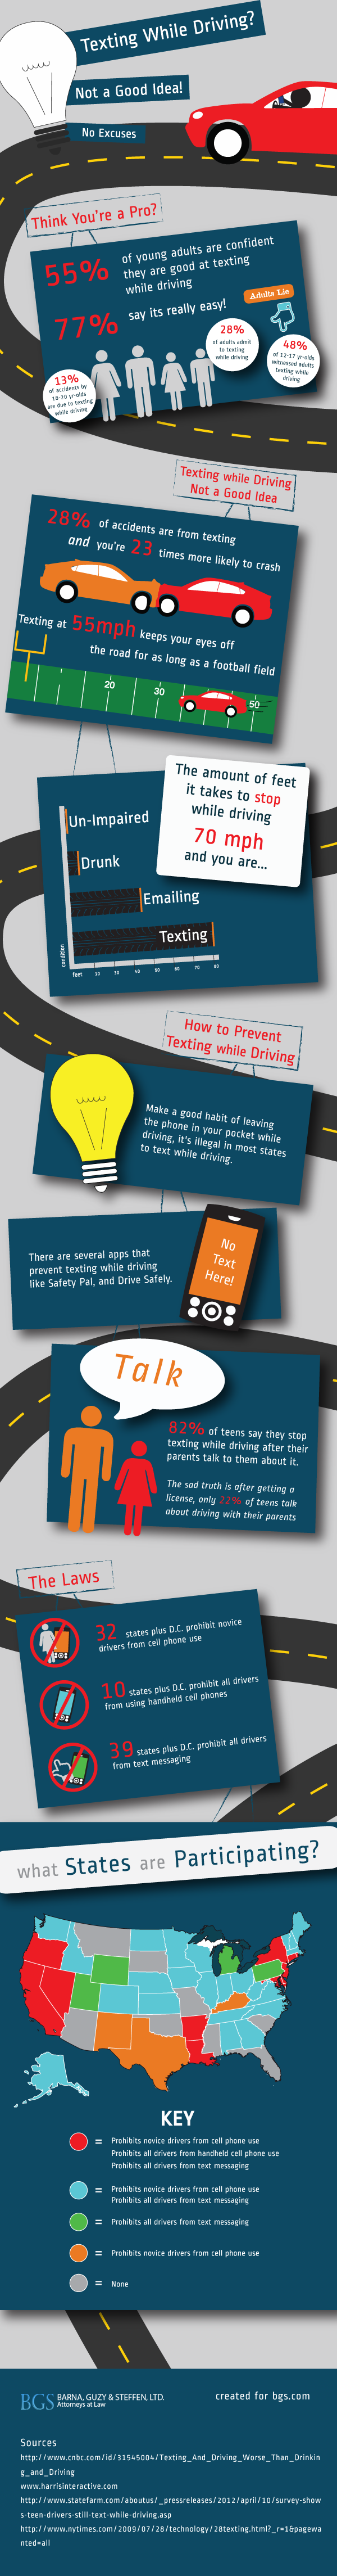 texting while driving laws essay